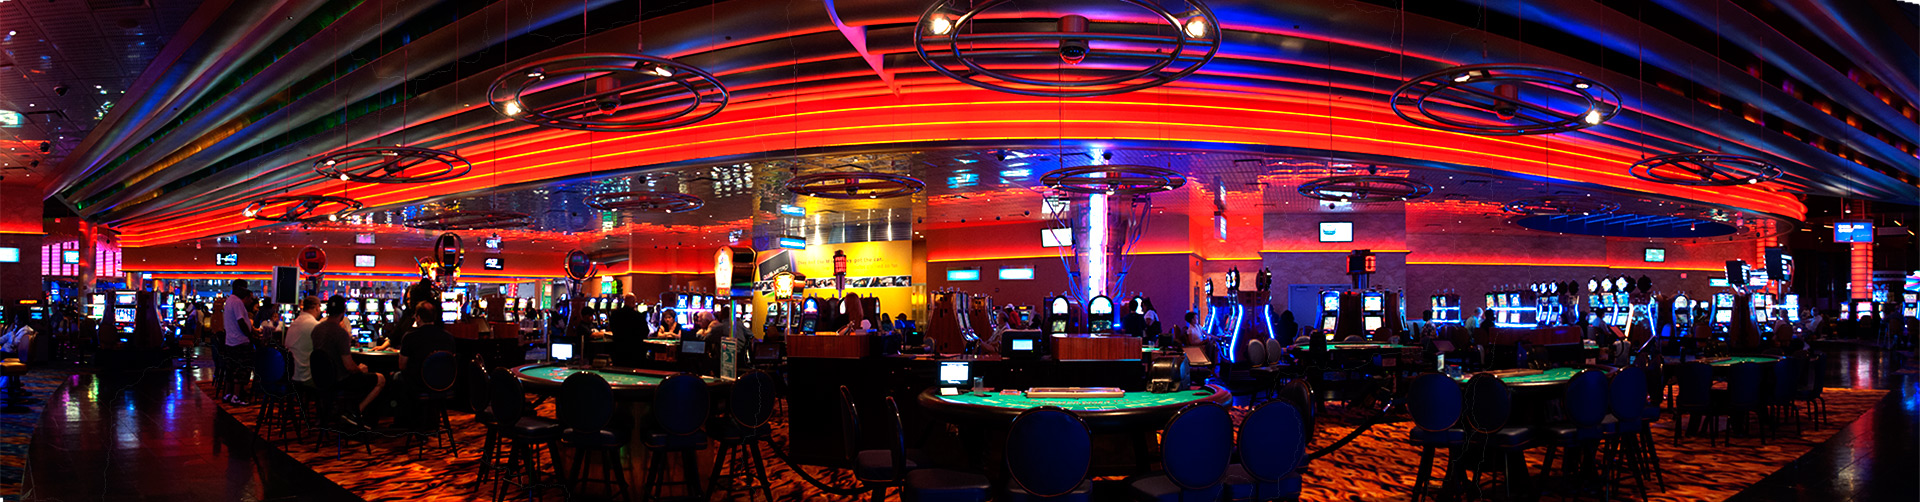 Detriot motor city casino seneca casino in niagara falls new